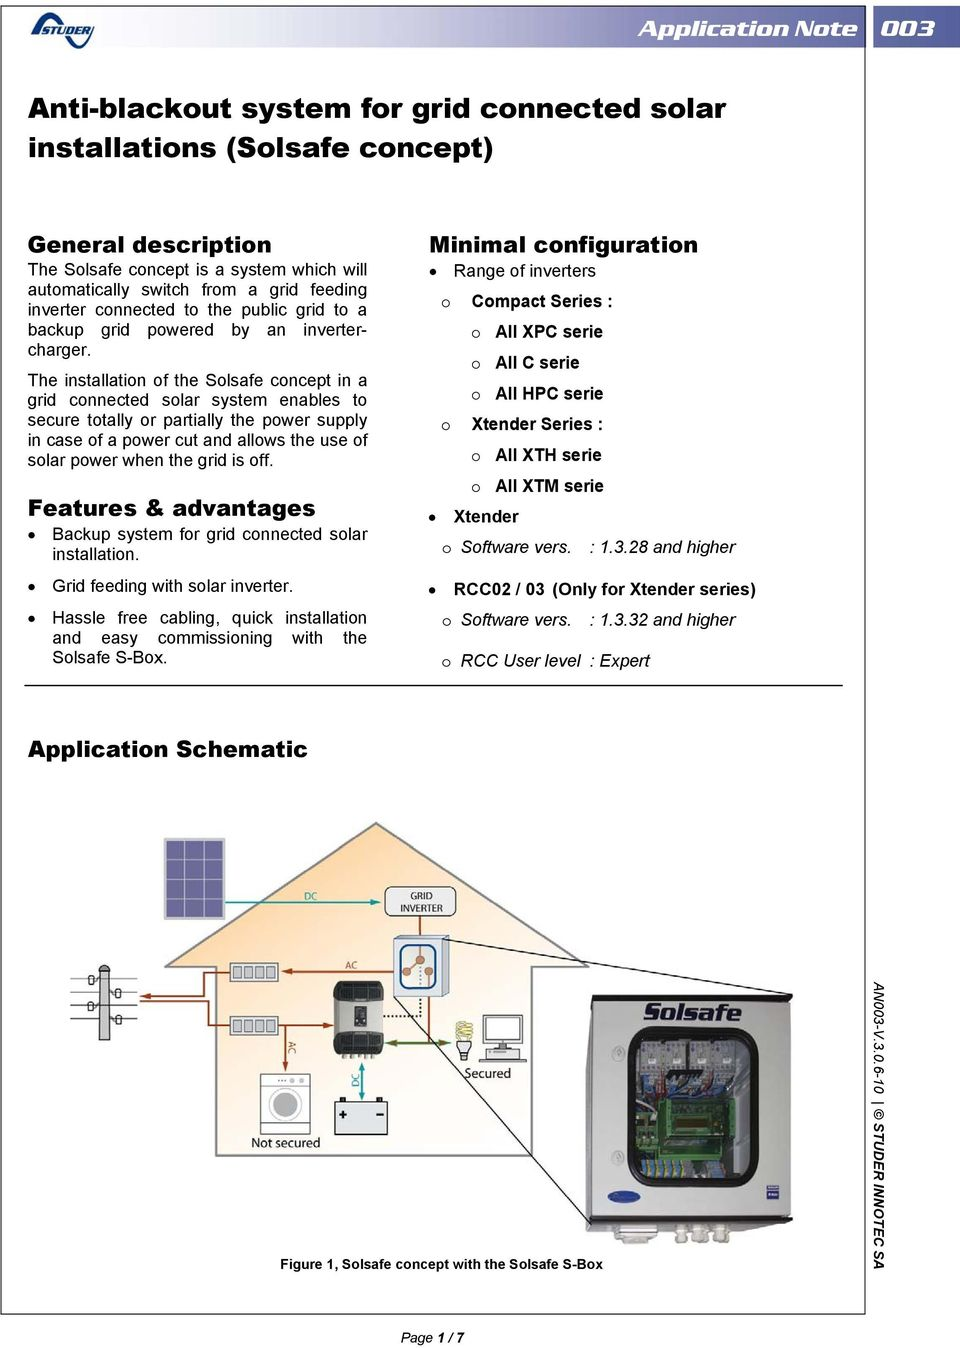 The installation of the Solsafe concept in a grid connected solar system enables to secure totally or partially the power supply in case of a power cut and allows the use of solar power when the grid